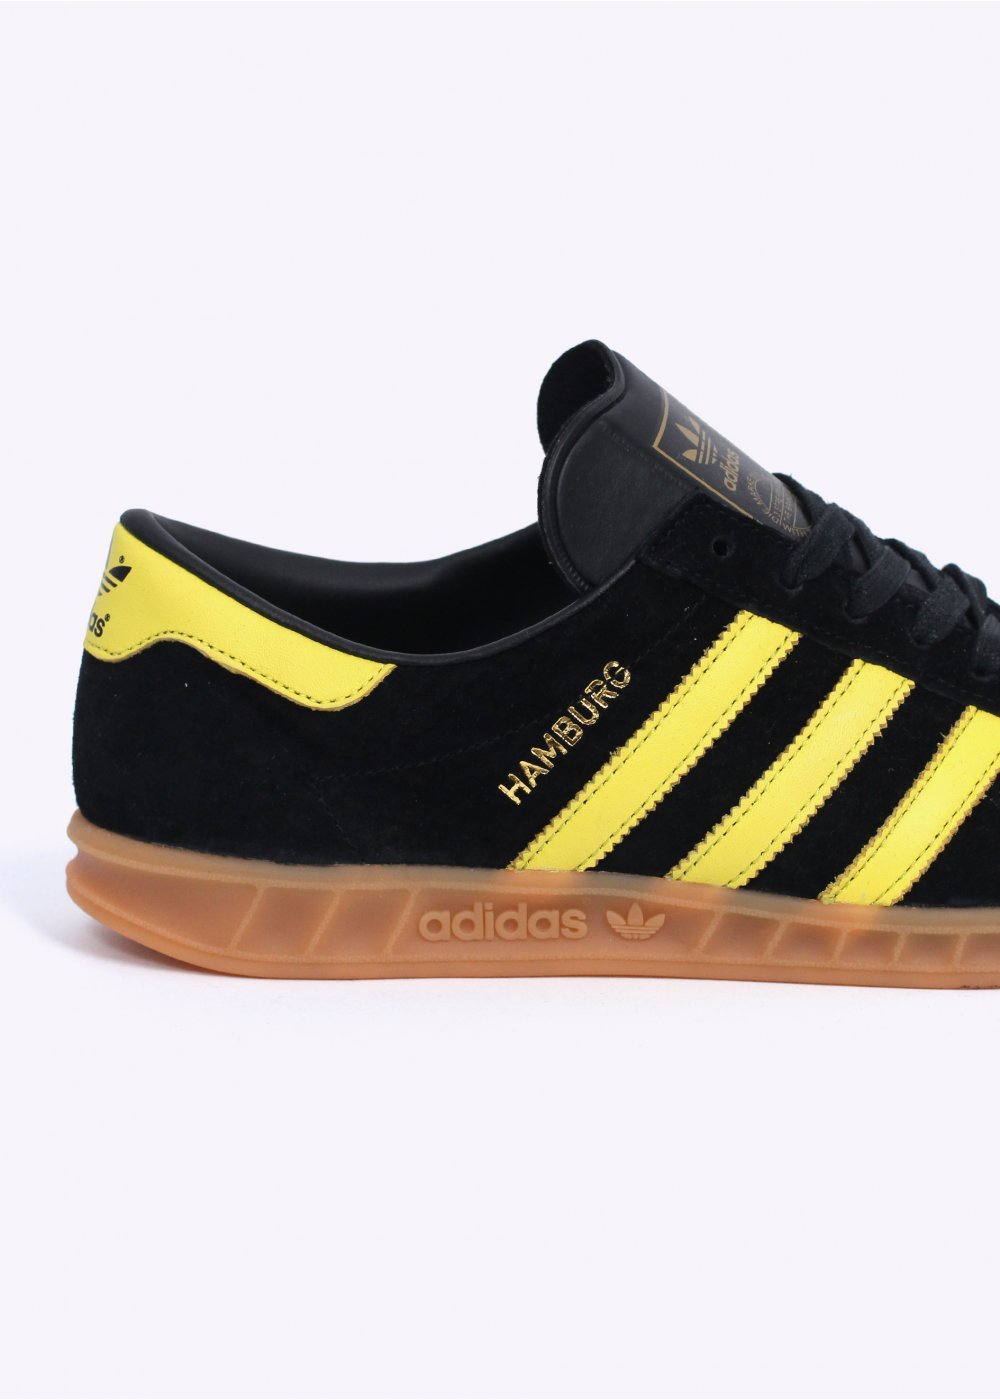 adidas Originals Footwear Hamburg 'Oslo' Trainers Black Lemon